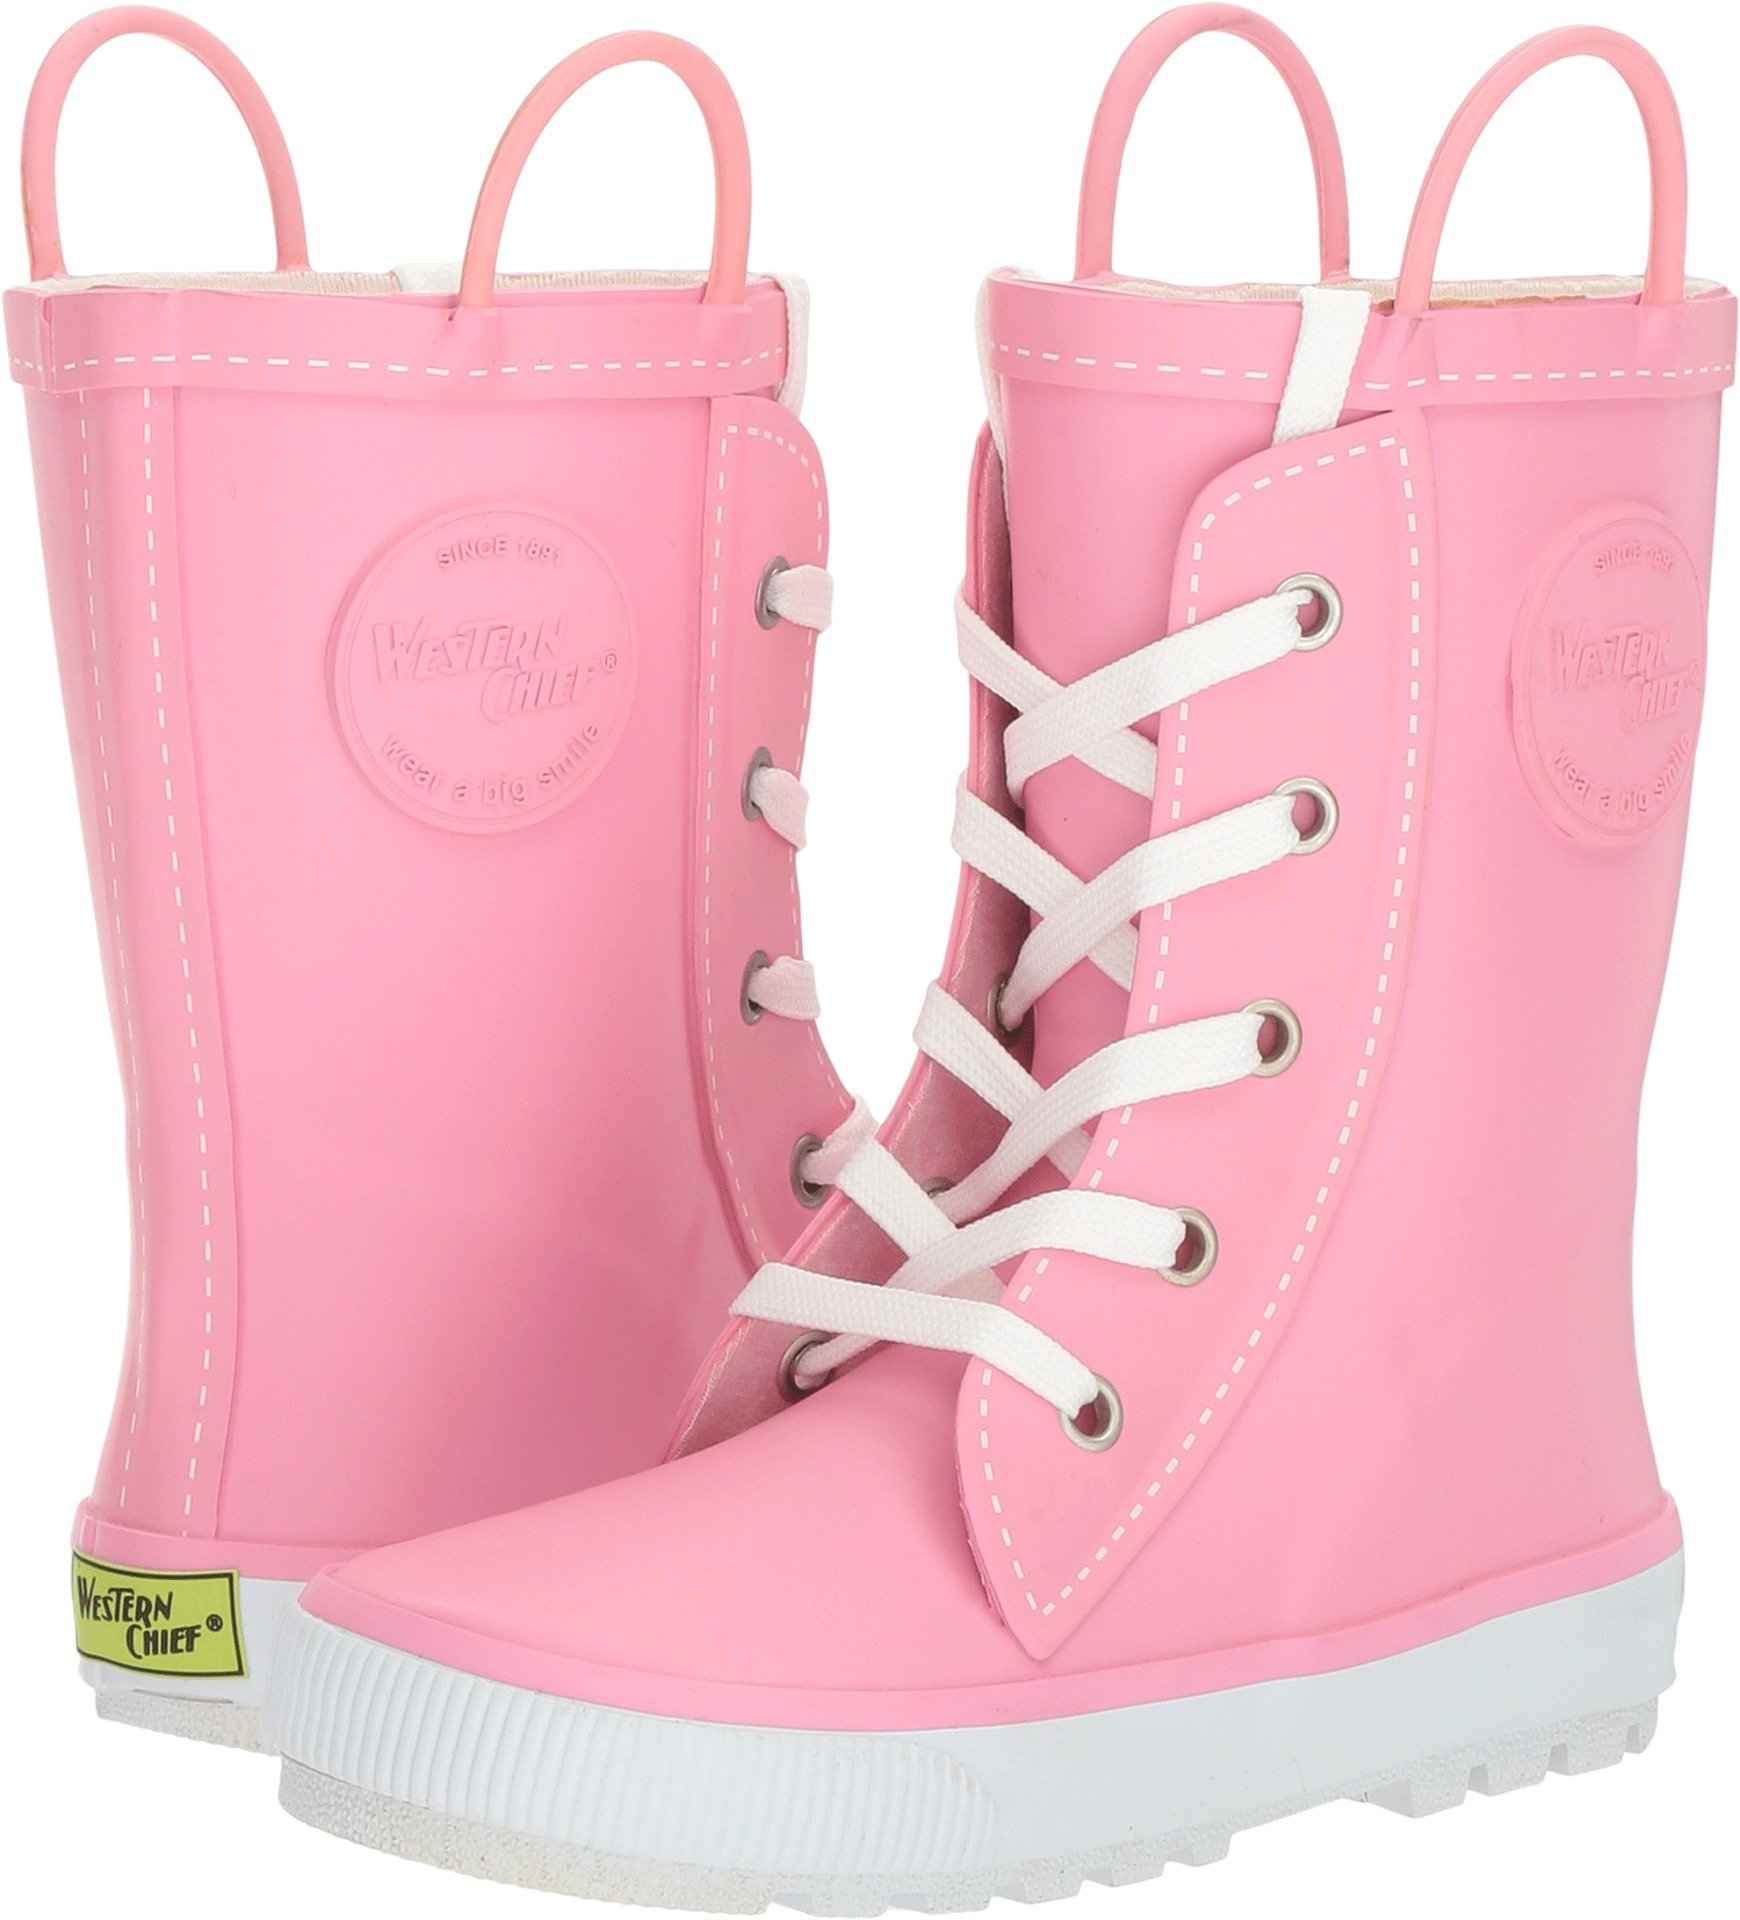 Western Chief Girls Printed Rain Boot, Sneaker Pink, 4 M US Big Kid